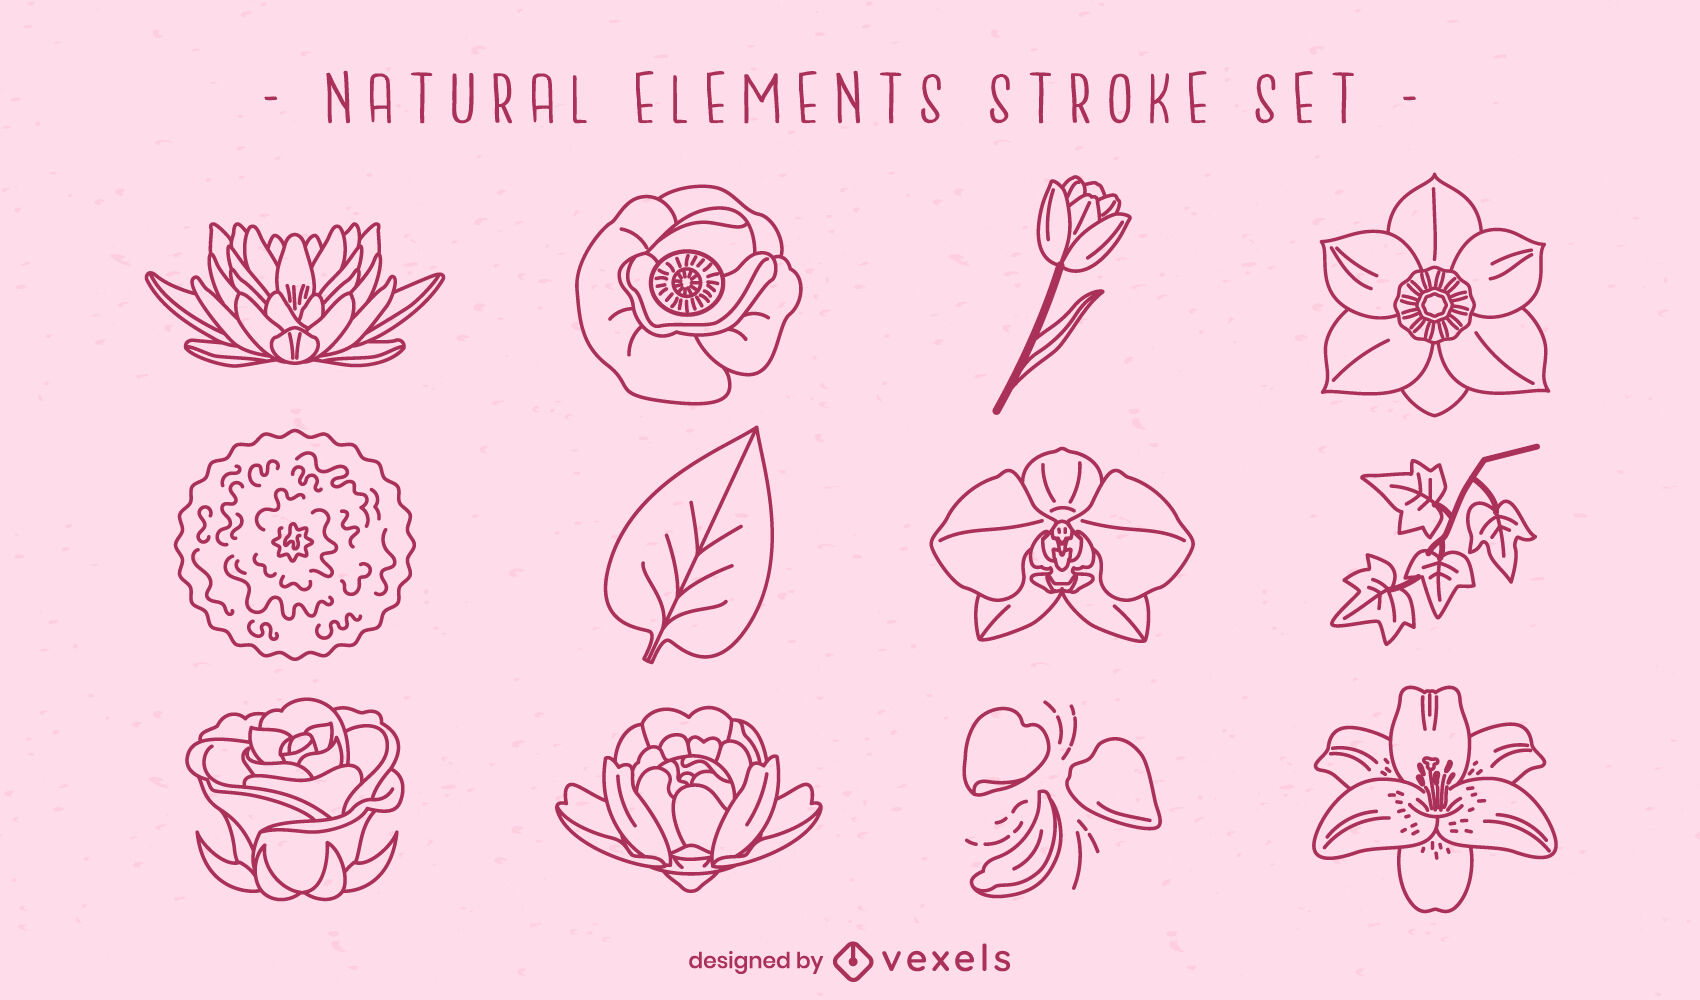 Flowers and leaves natural elements stroke